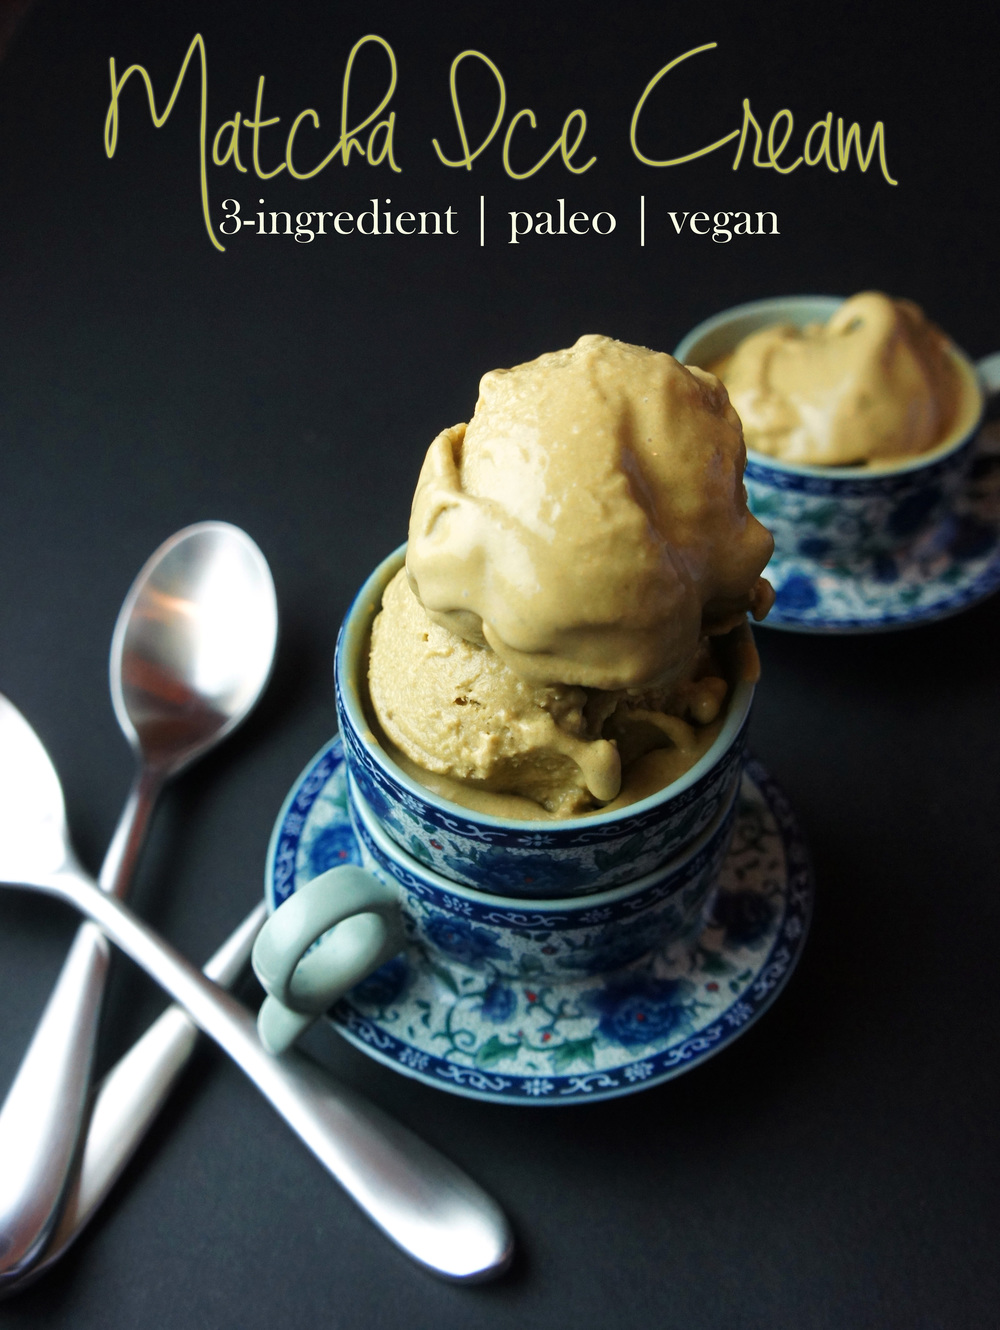 3-Ingredient Matcha Ice Cream thats aip-paleo, vegan, and raw! Afternoon pick-me-up anyone?